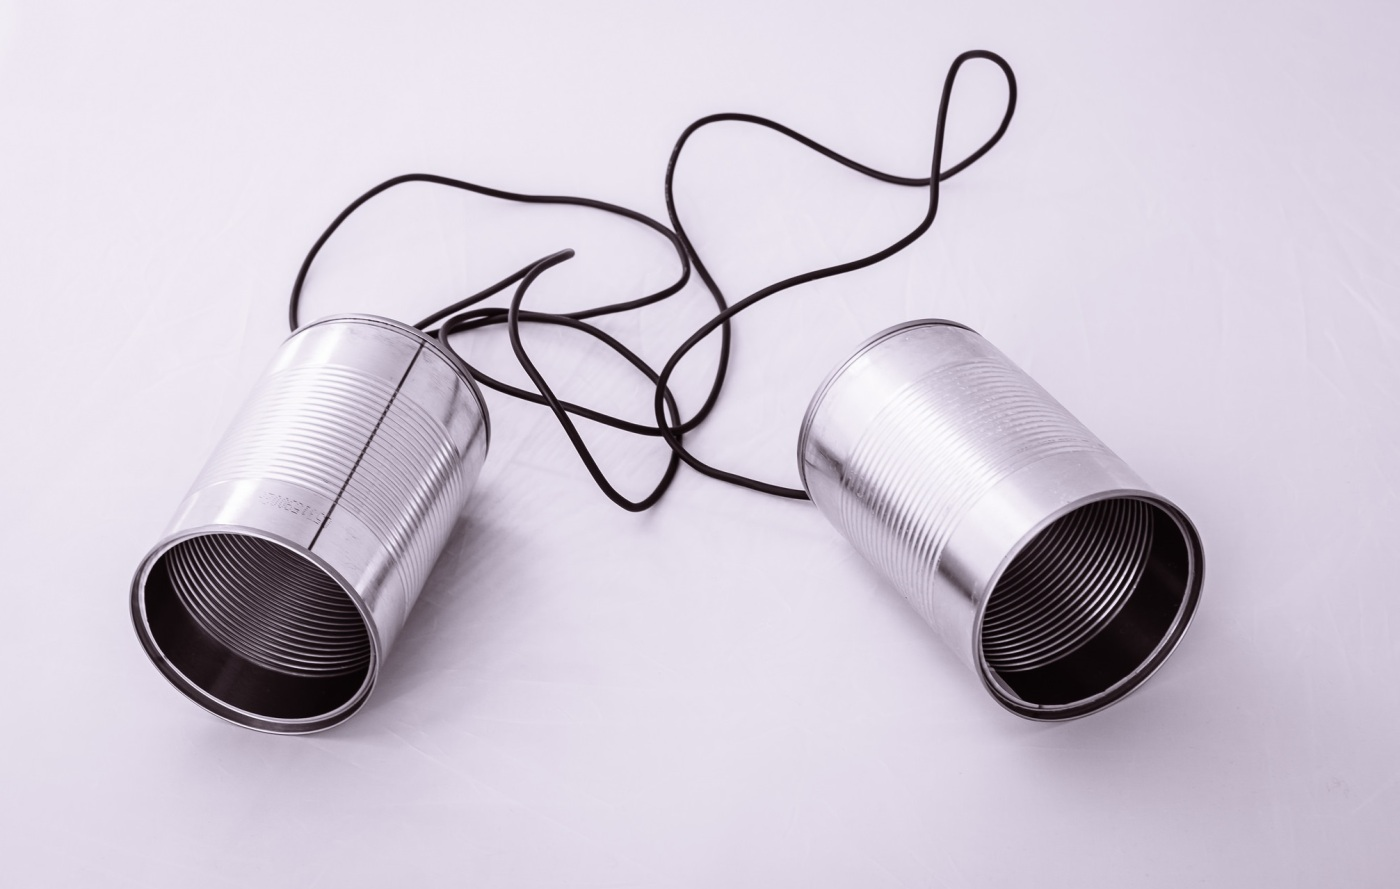 Picture of two cans linked by a thread